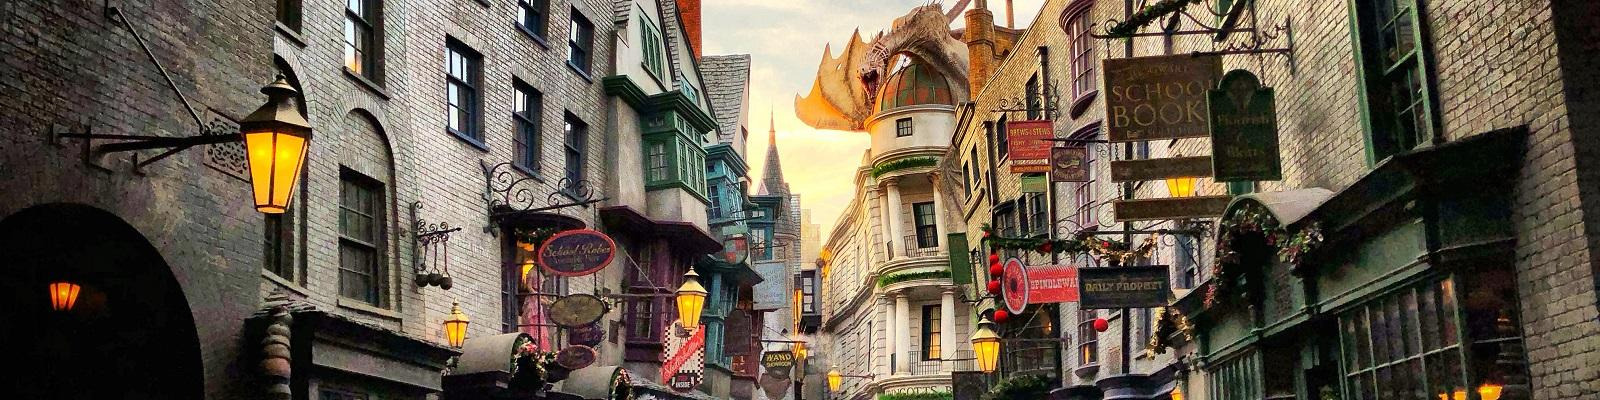 Visitors walking through Diagon Alley at The Wizarding World of Harry Potter, Universal's Islands Of Adventure